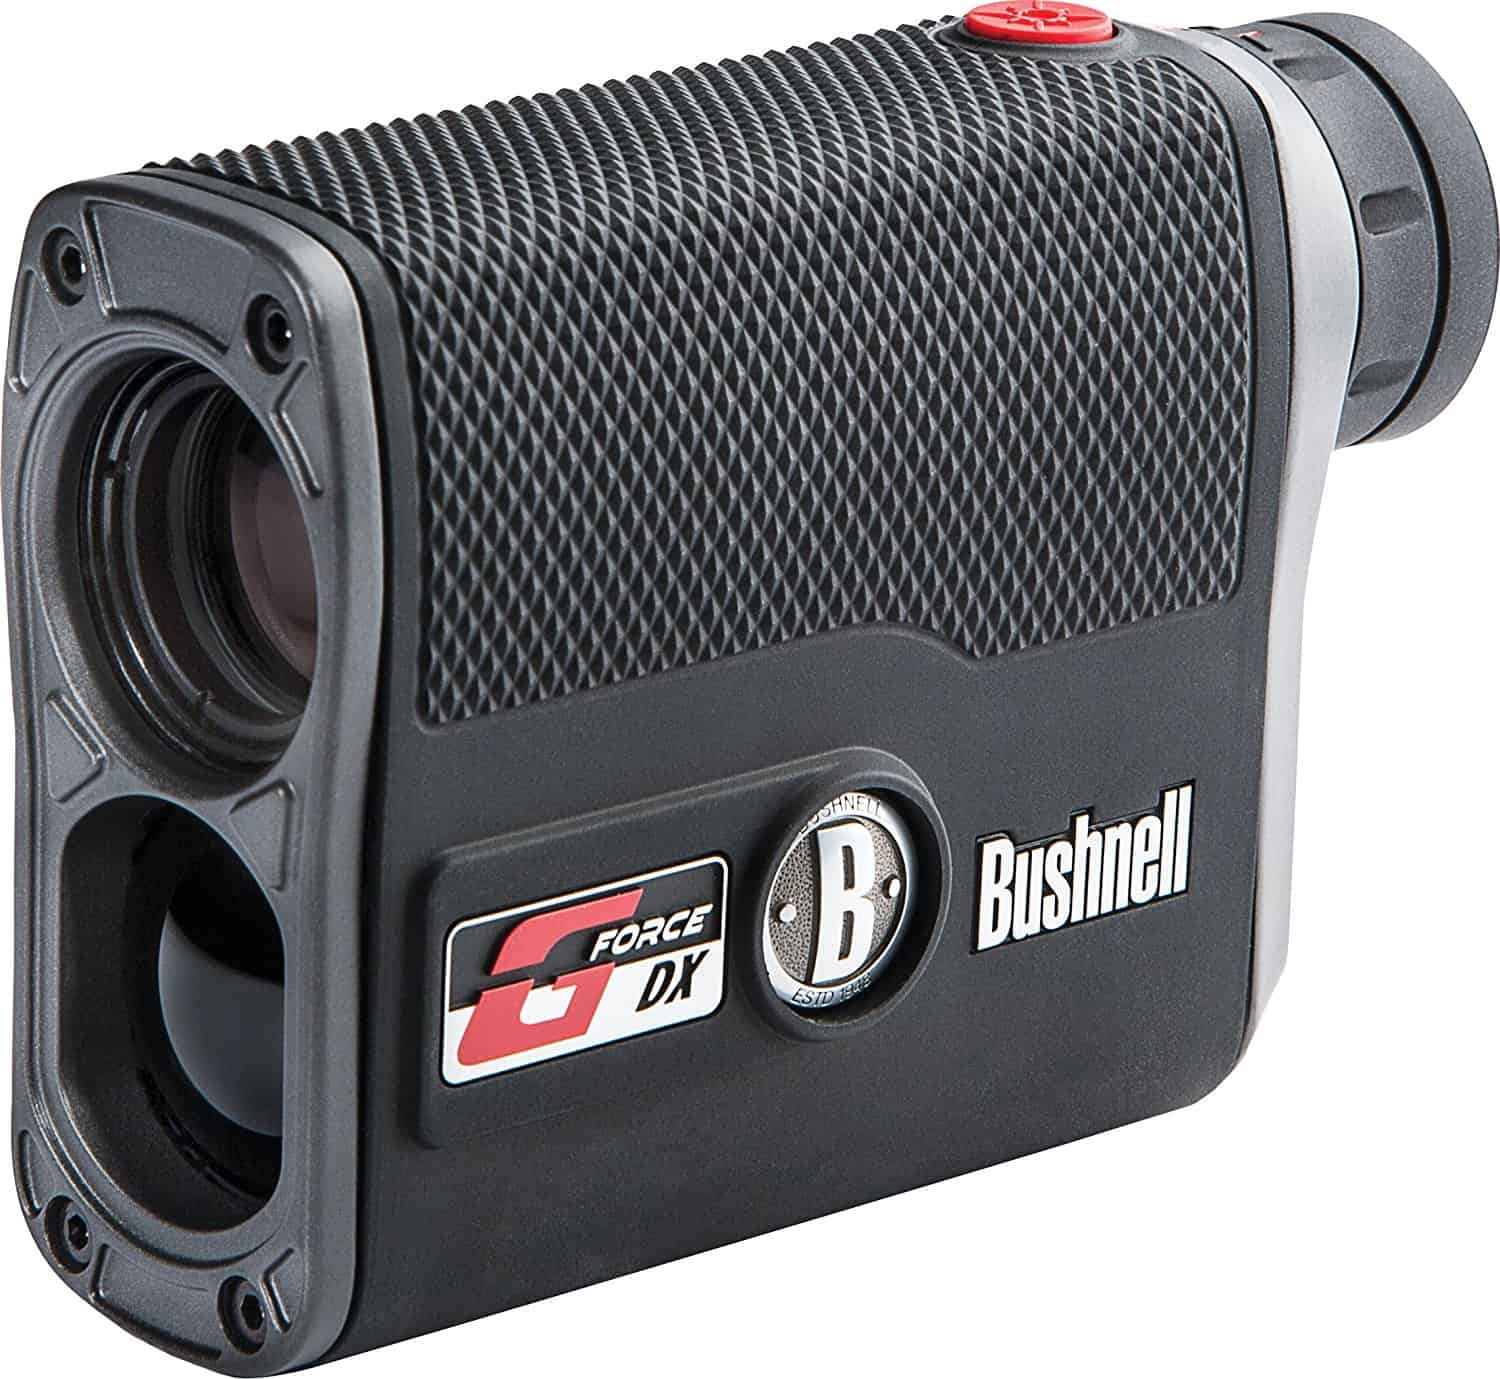 Bushnell G-Force DX ARC, 6x21mm, Laser